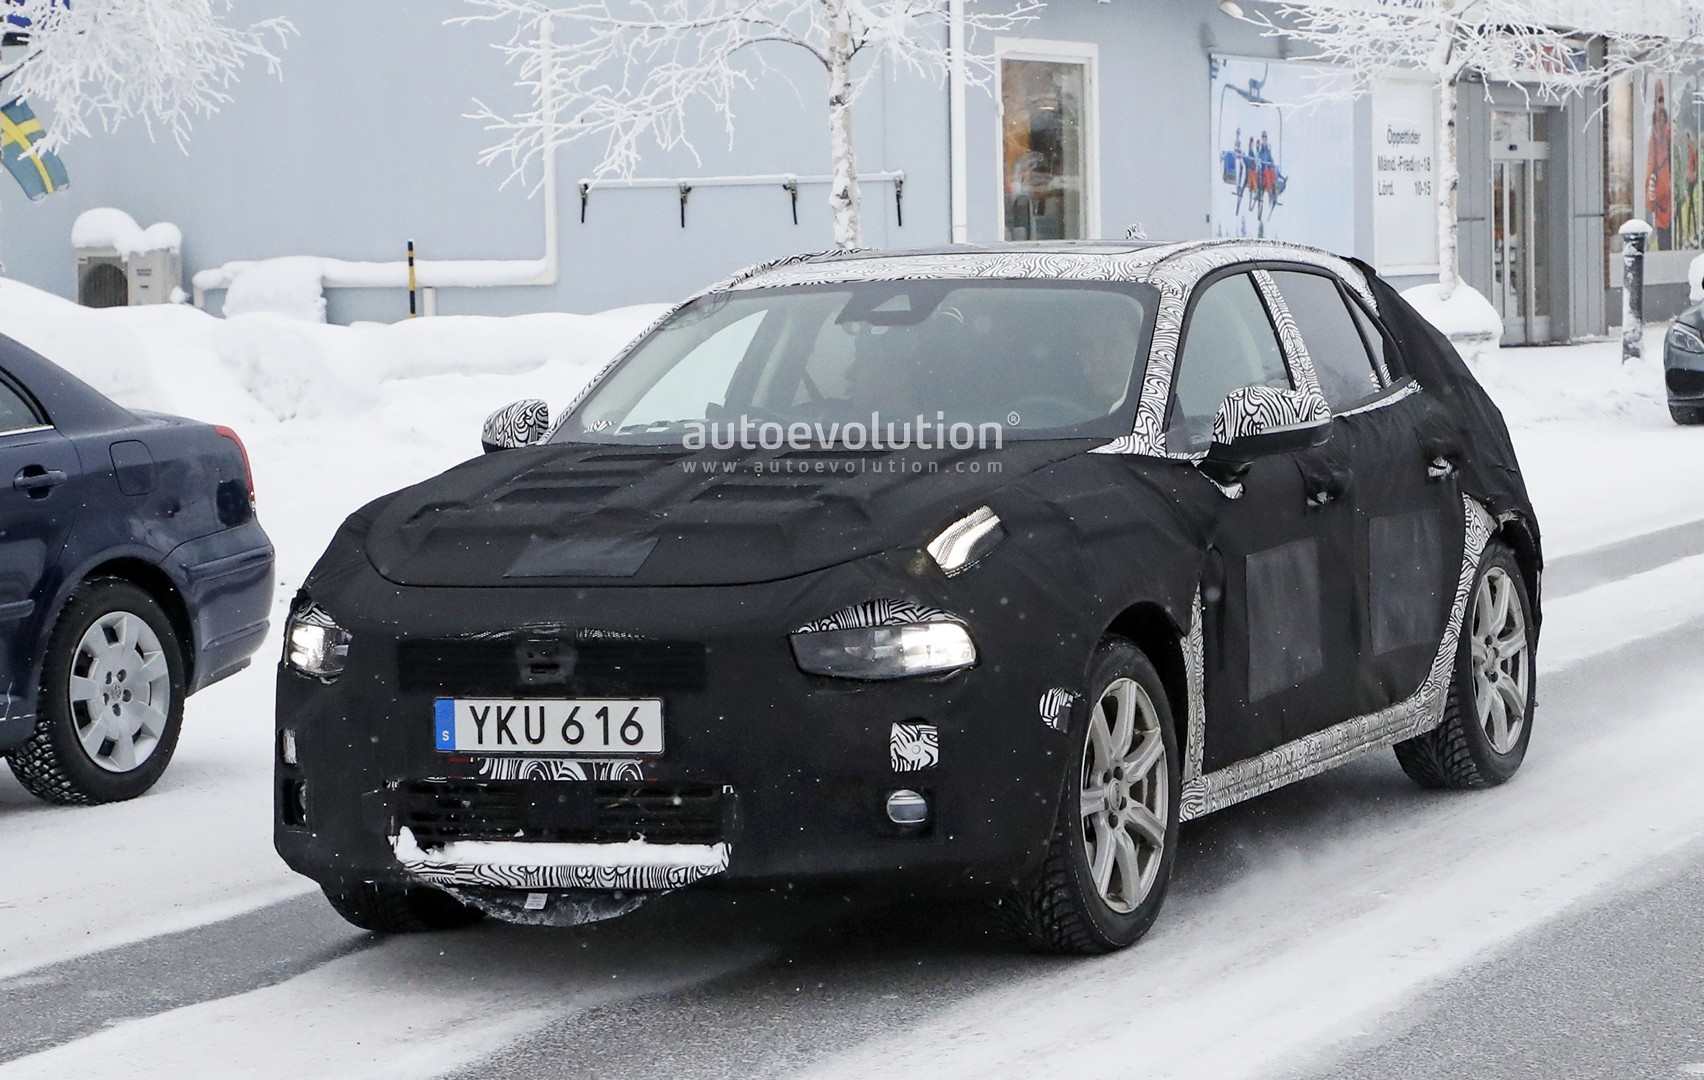 Volvos CMA Compact Car Plans New V40 In 2016 And XC40 In